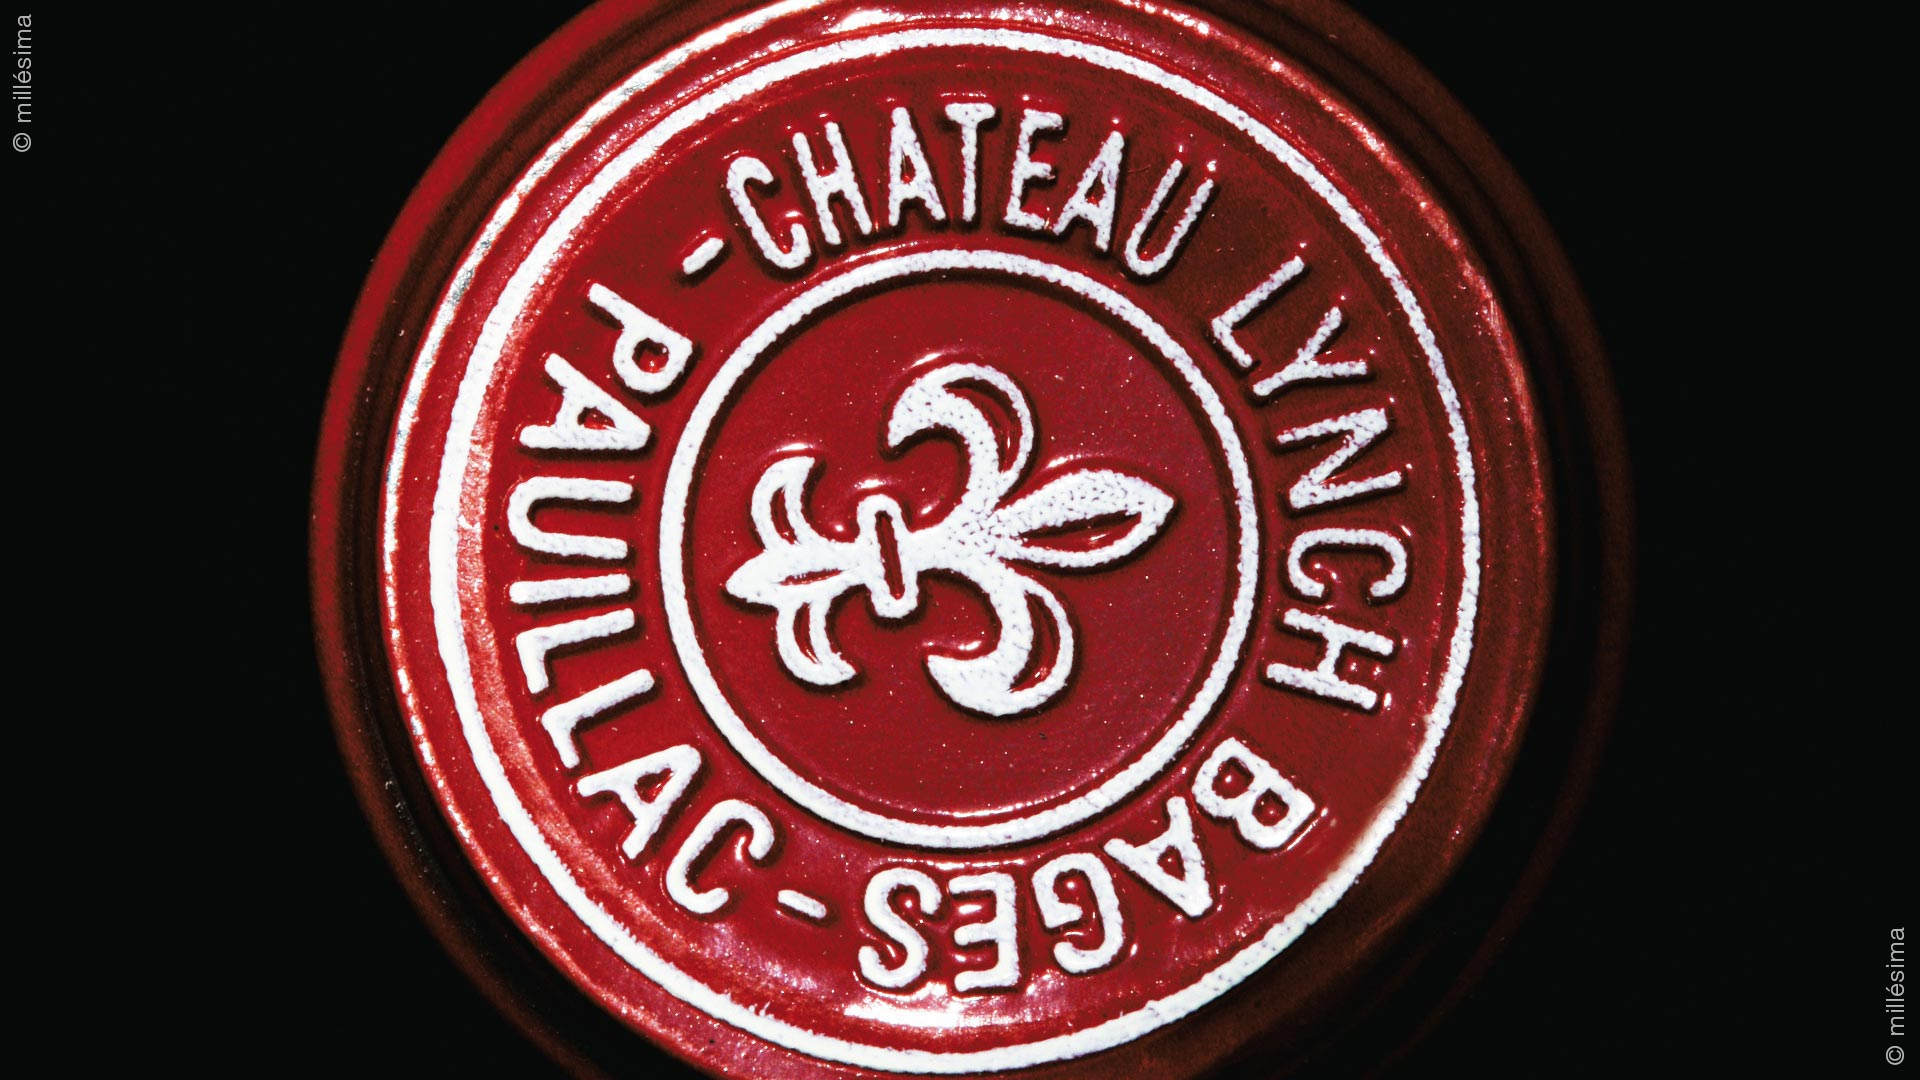 Chateau Lynch-Bages 2007 - 1